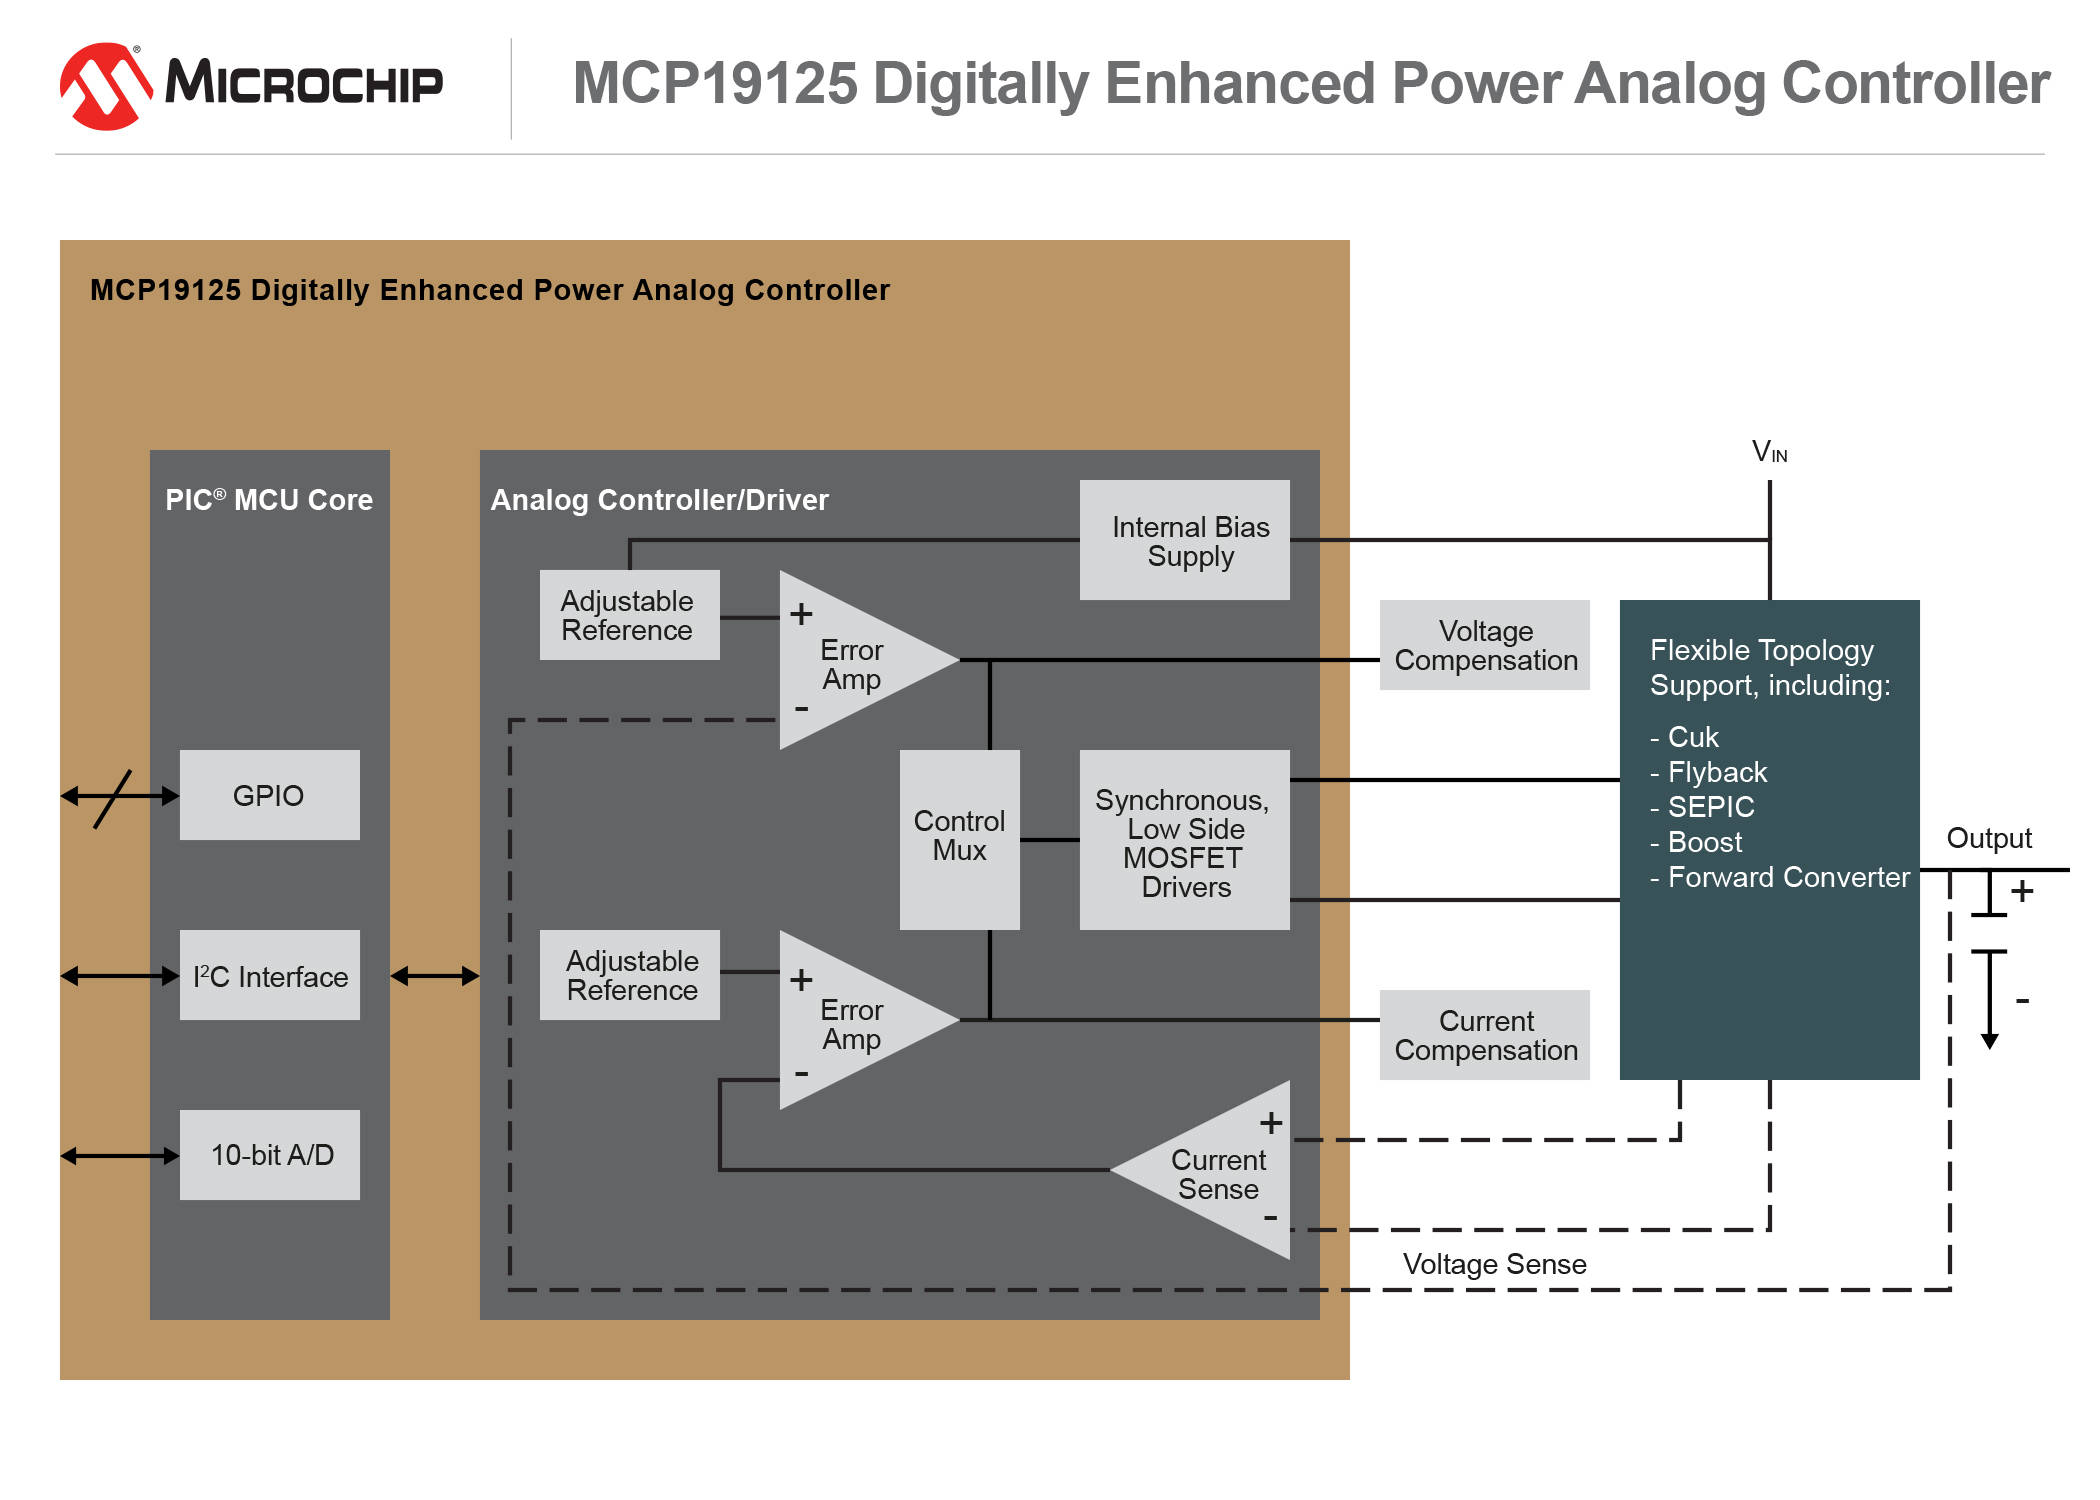 Improve Digital Support Of Battery Charging And Dc Conversion The Current From A Is Direct 160923 Apid Diag Mcp19125 7x5